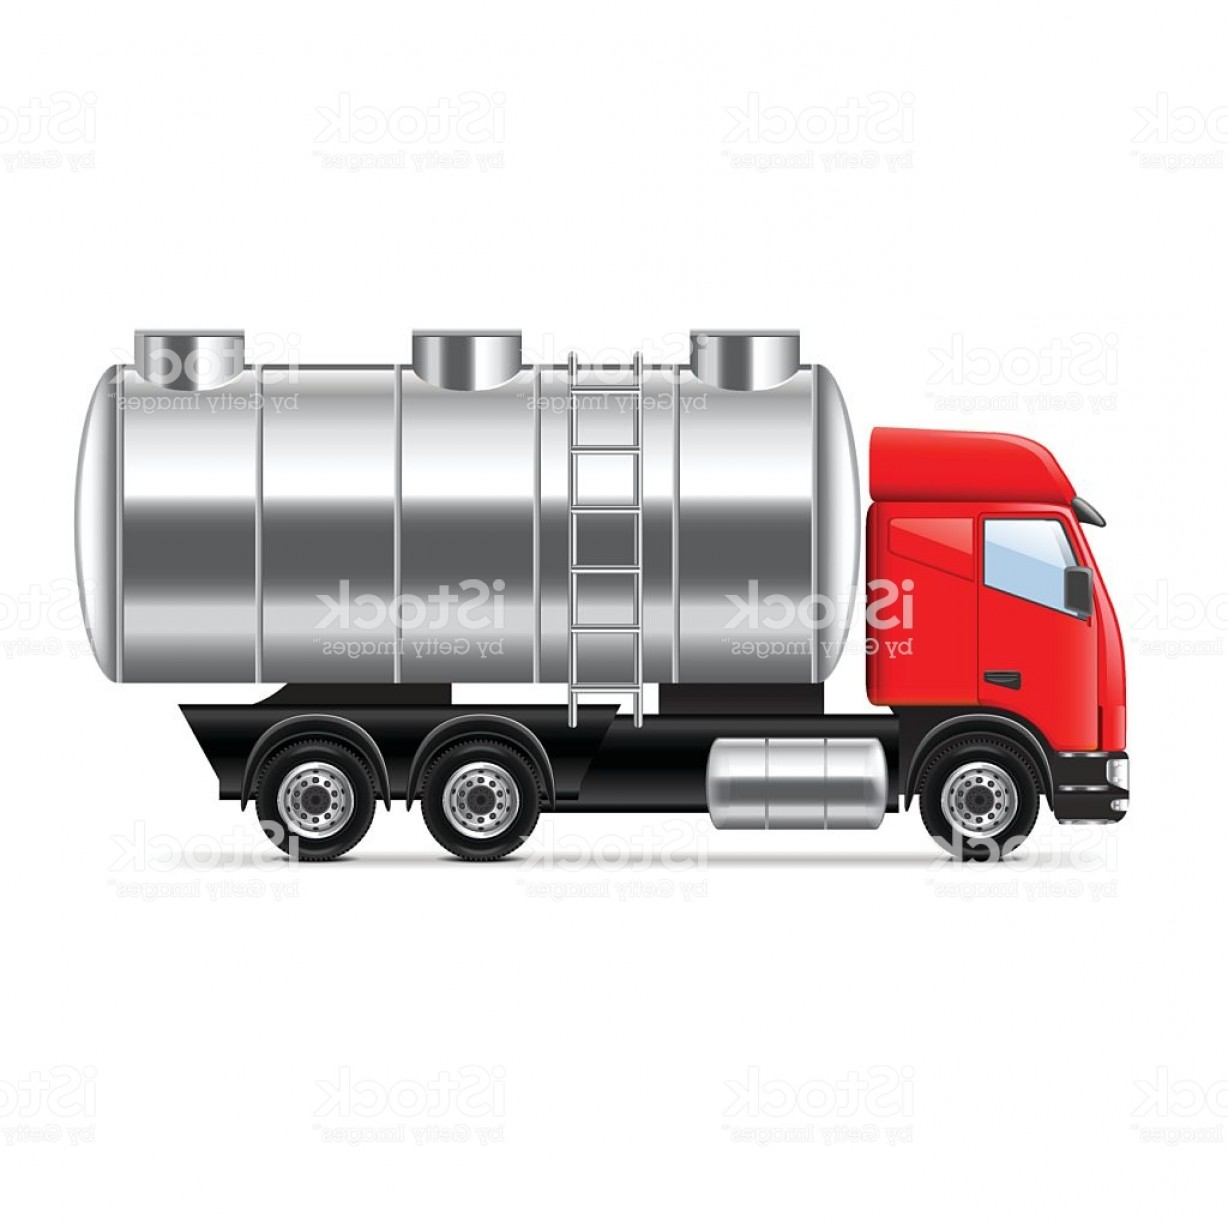 Tank Trucks Vector Art: Tank Truck Isolated On White Vector Gm